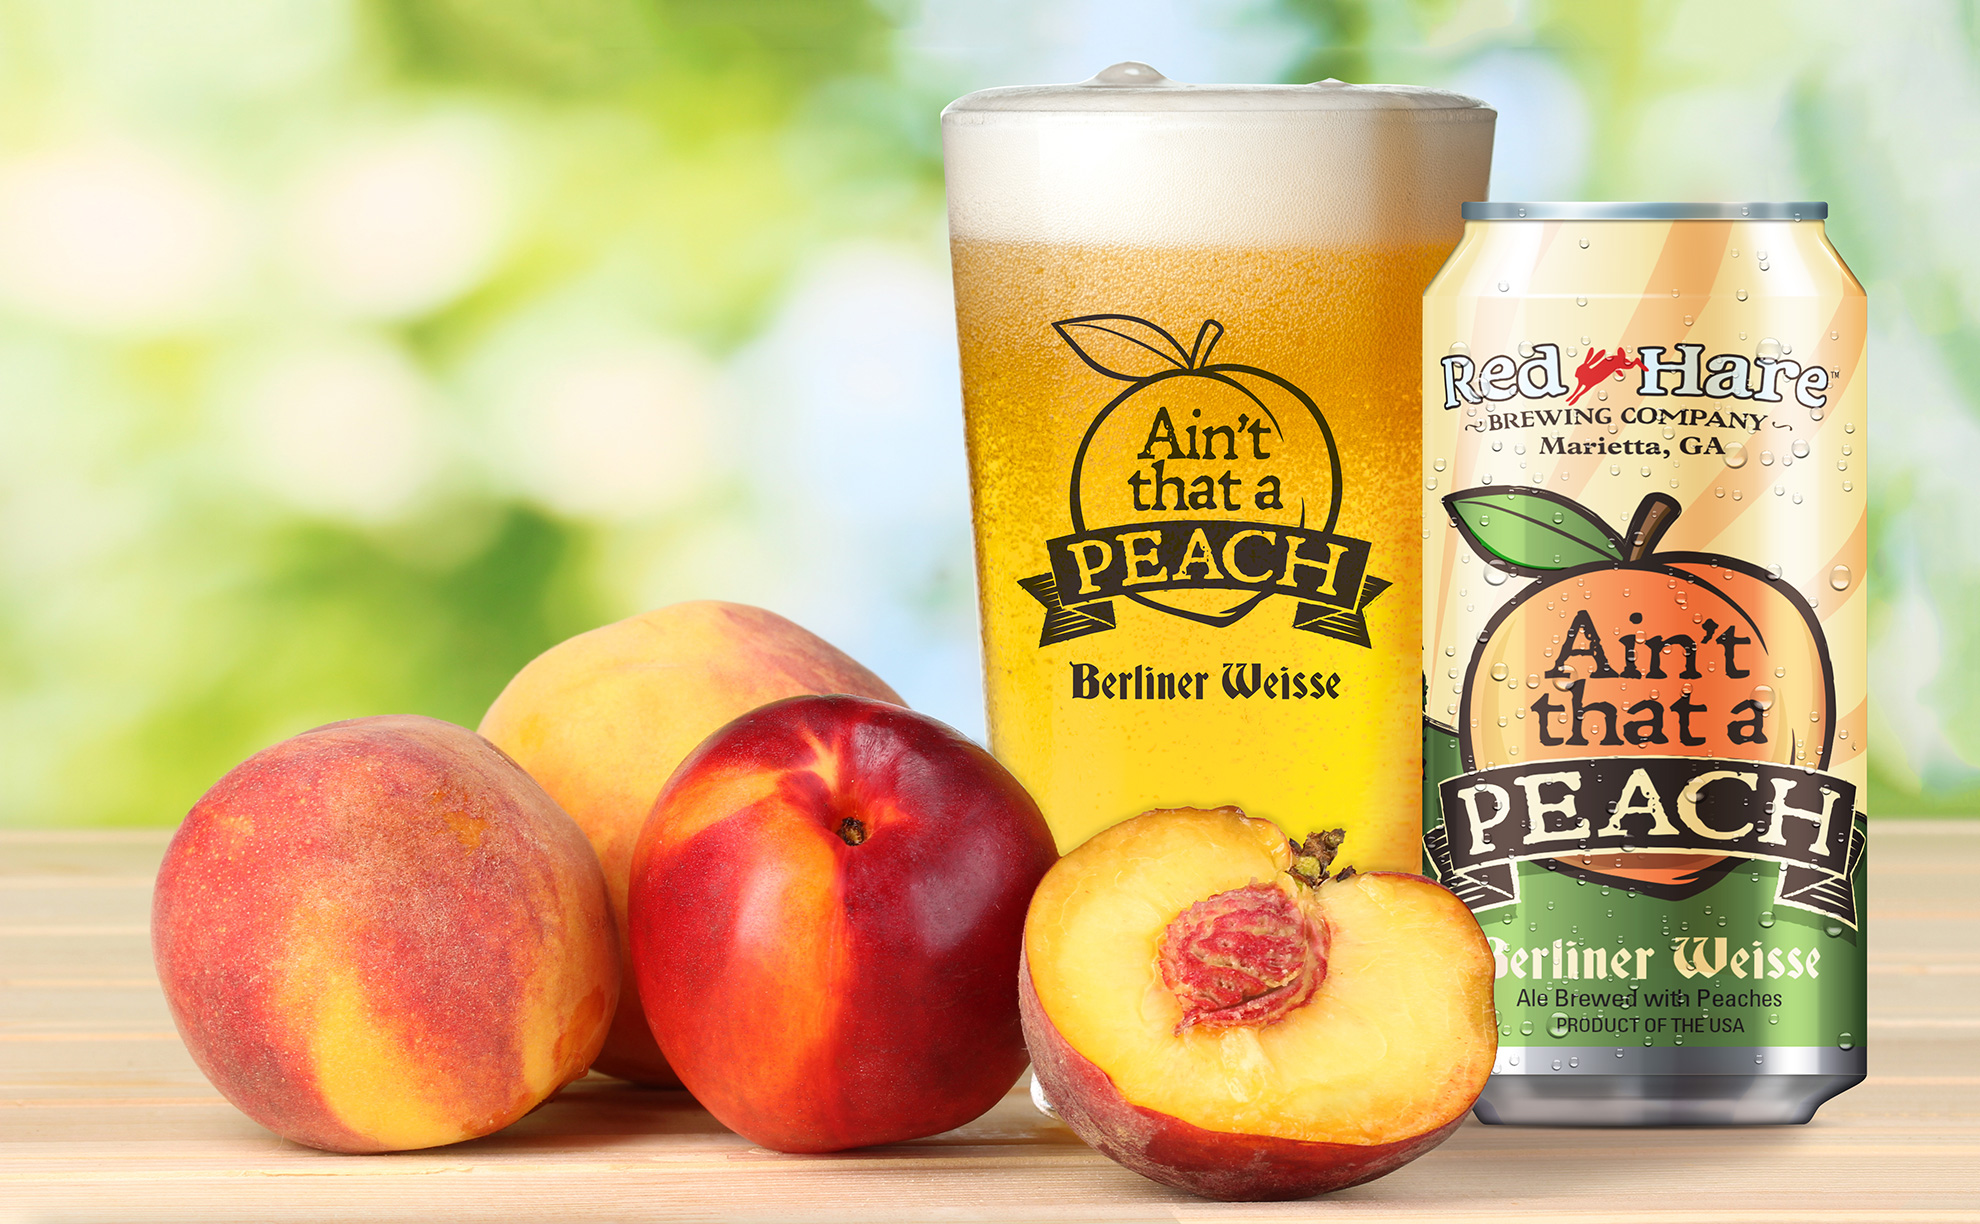 Red Hare Introduces The Berliner Weisse That's Peach at the